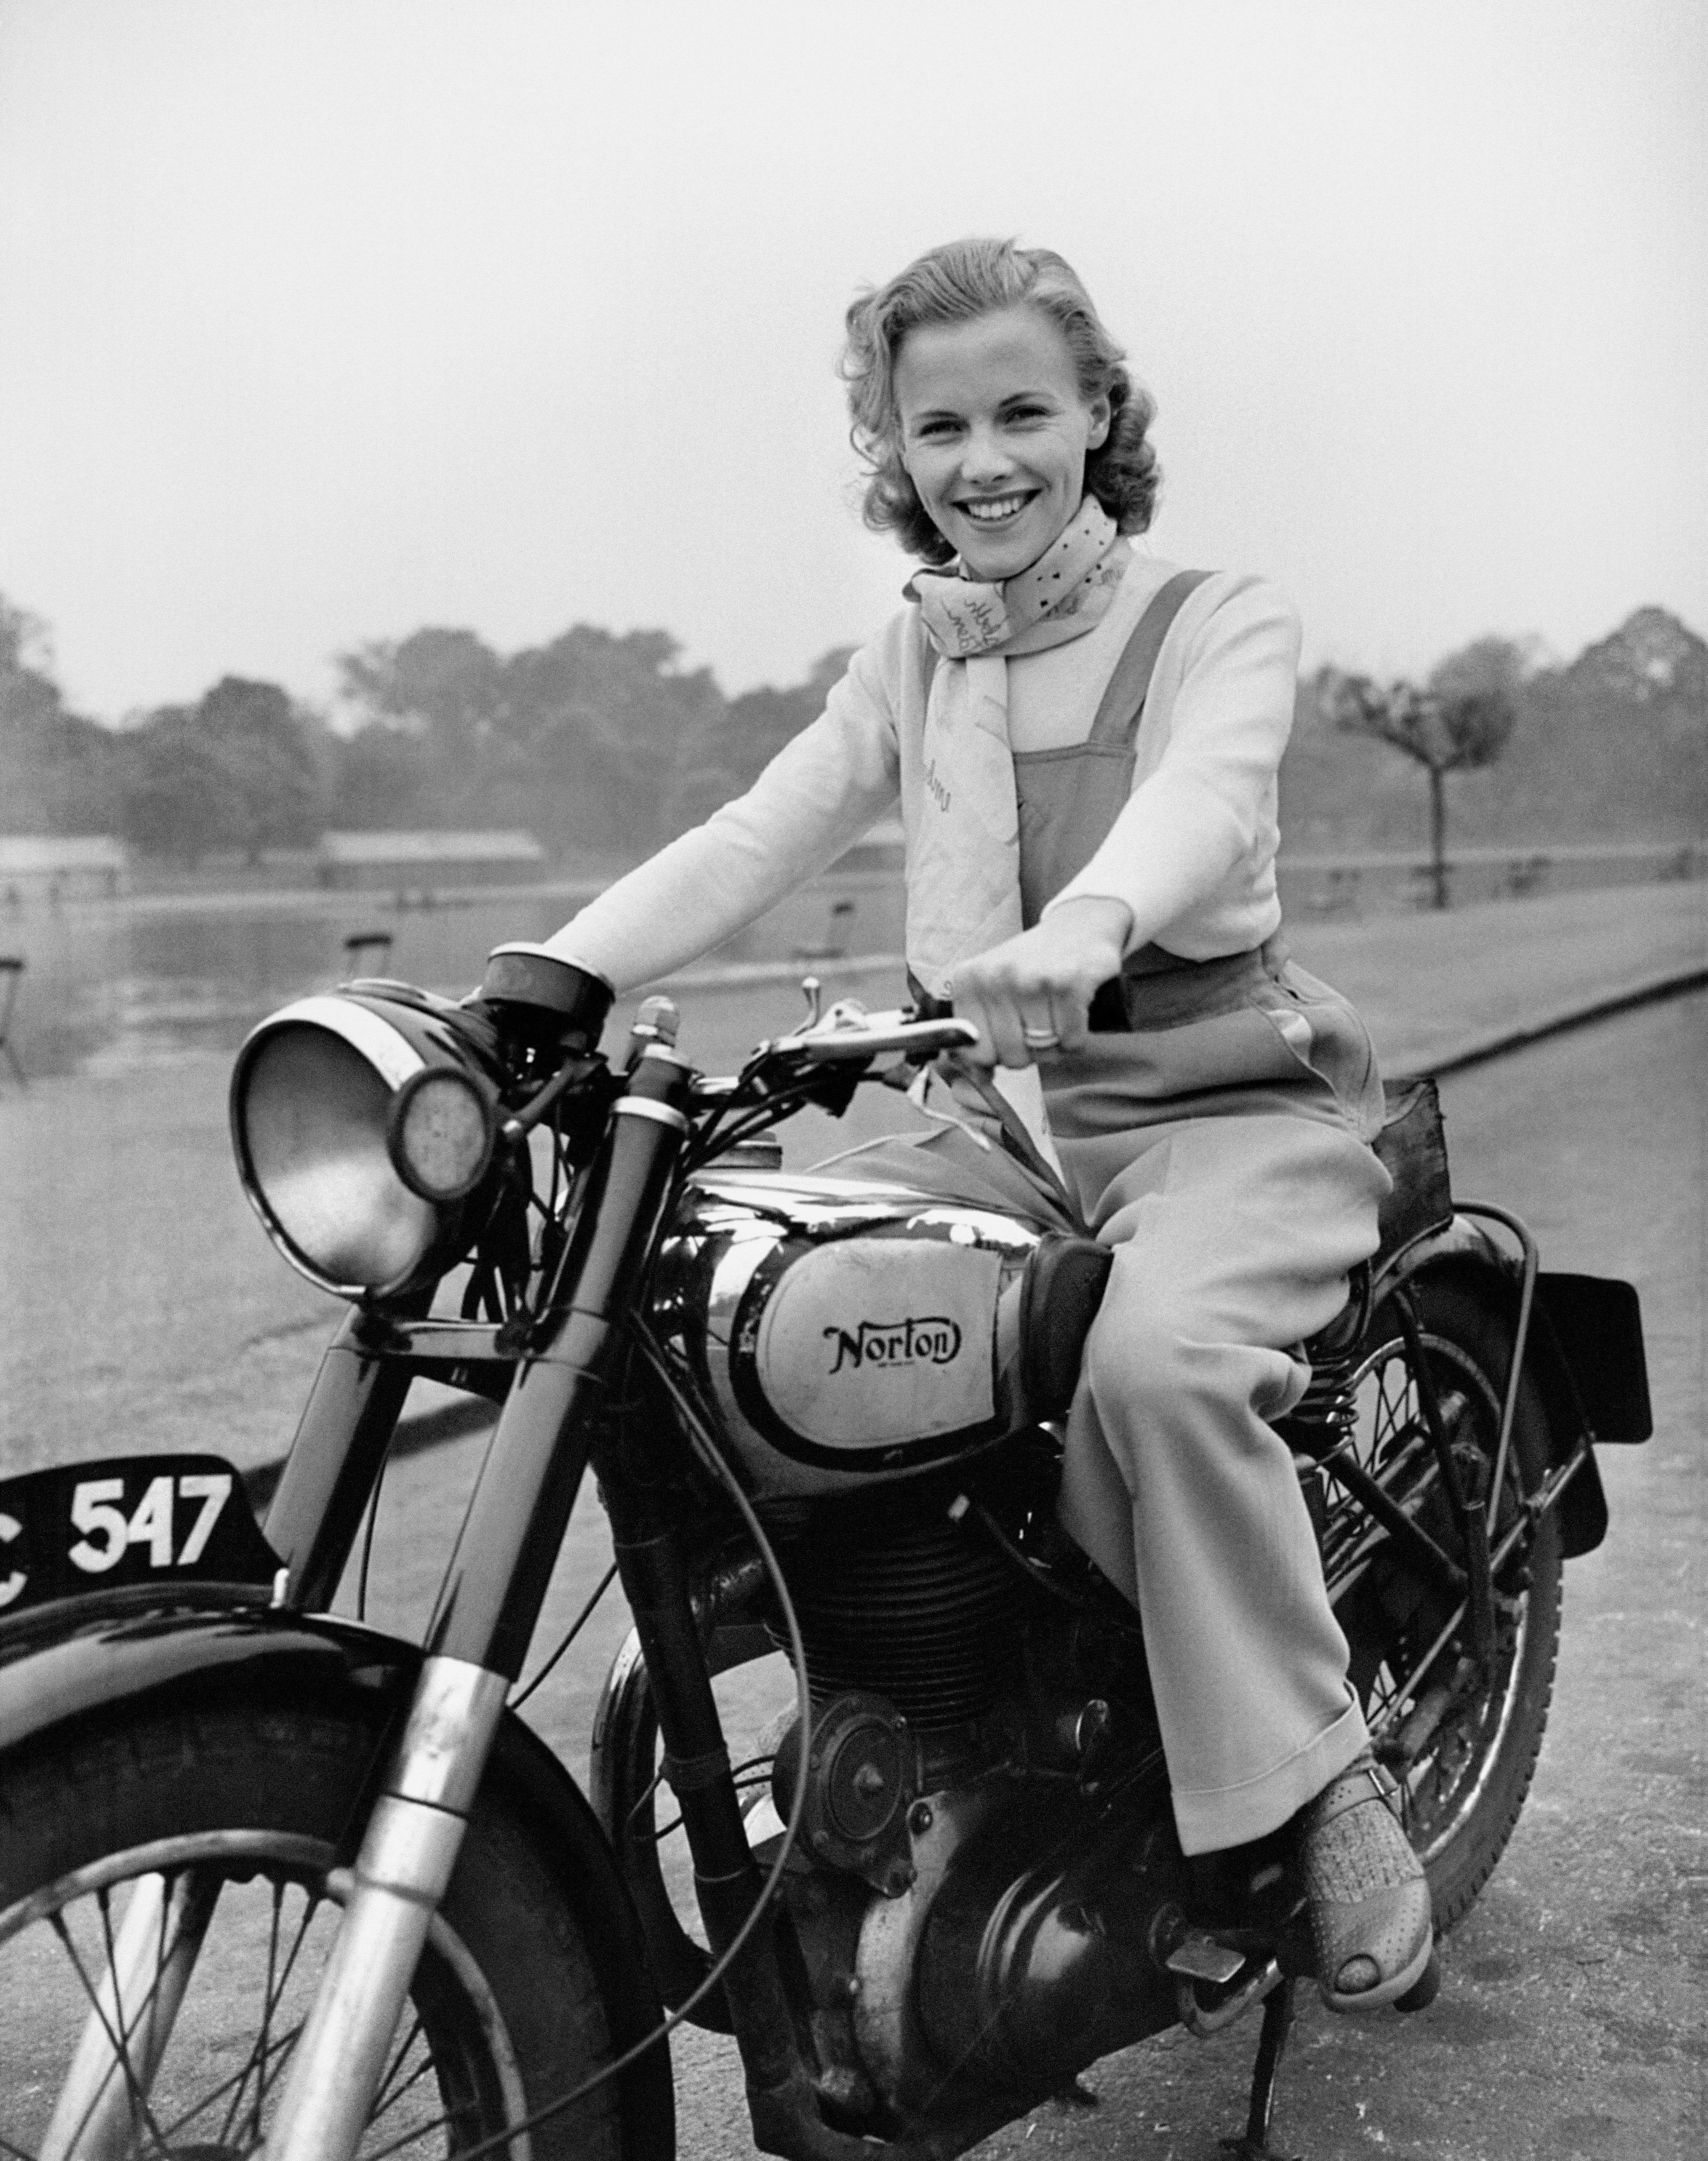 London-born film actress Honor Blackman, age 23, riding her Norton Big Four motorcycle through Hyde Park in London. 9/5/1949